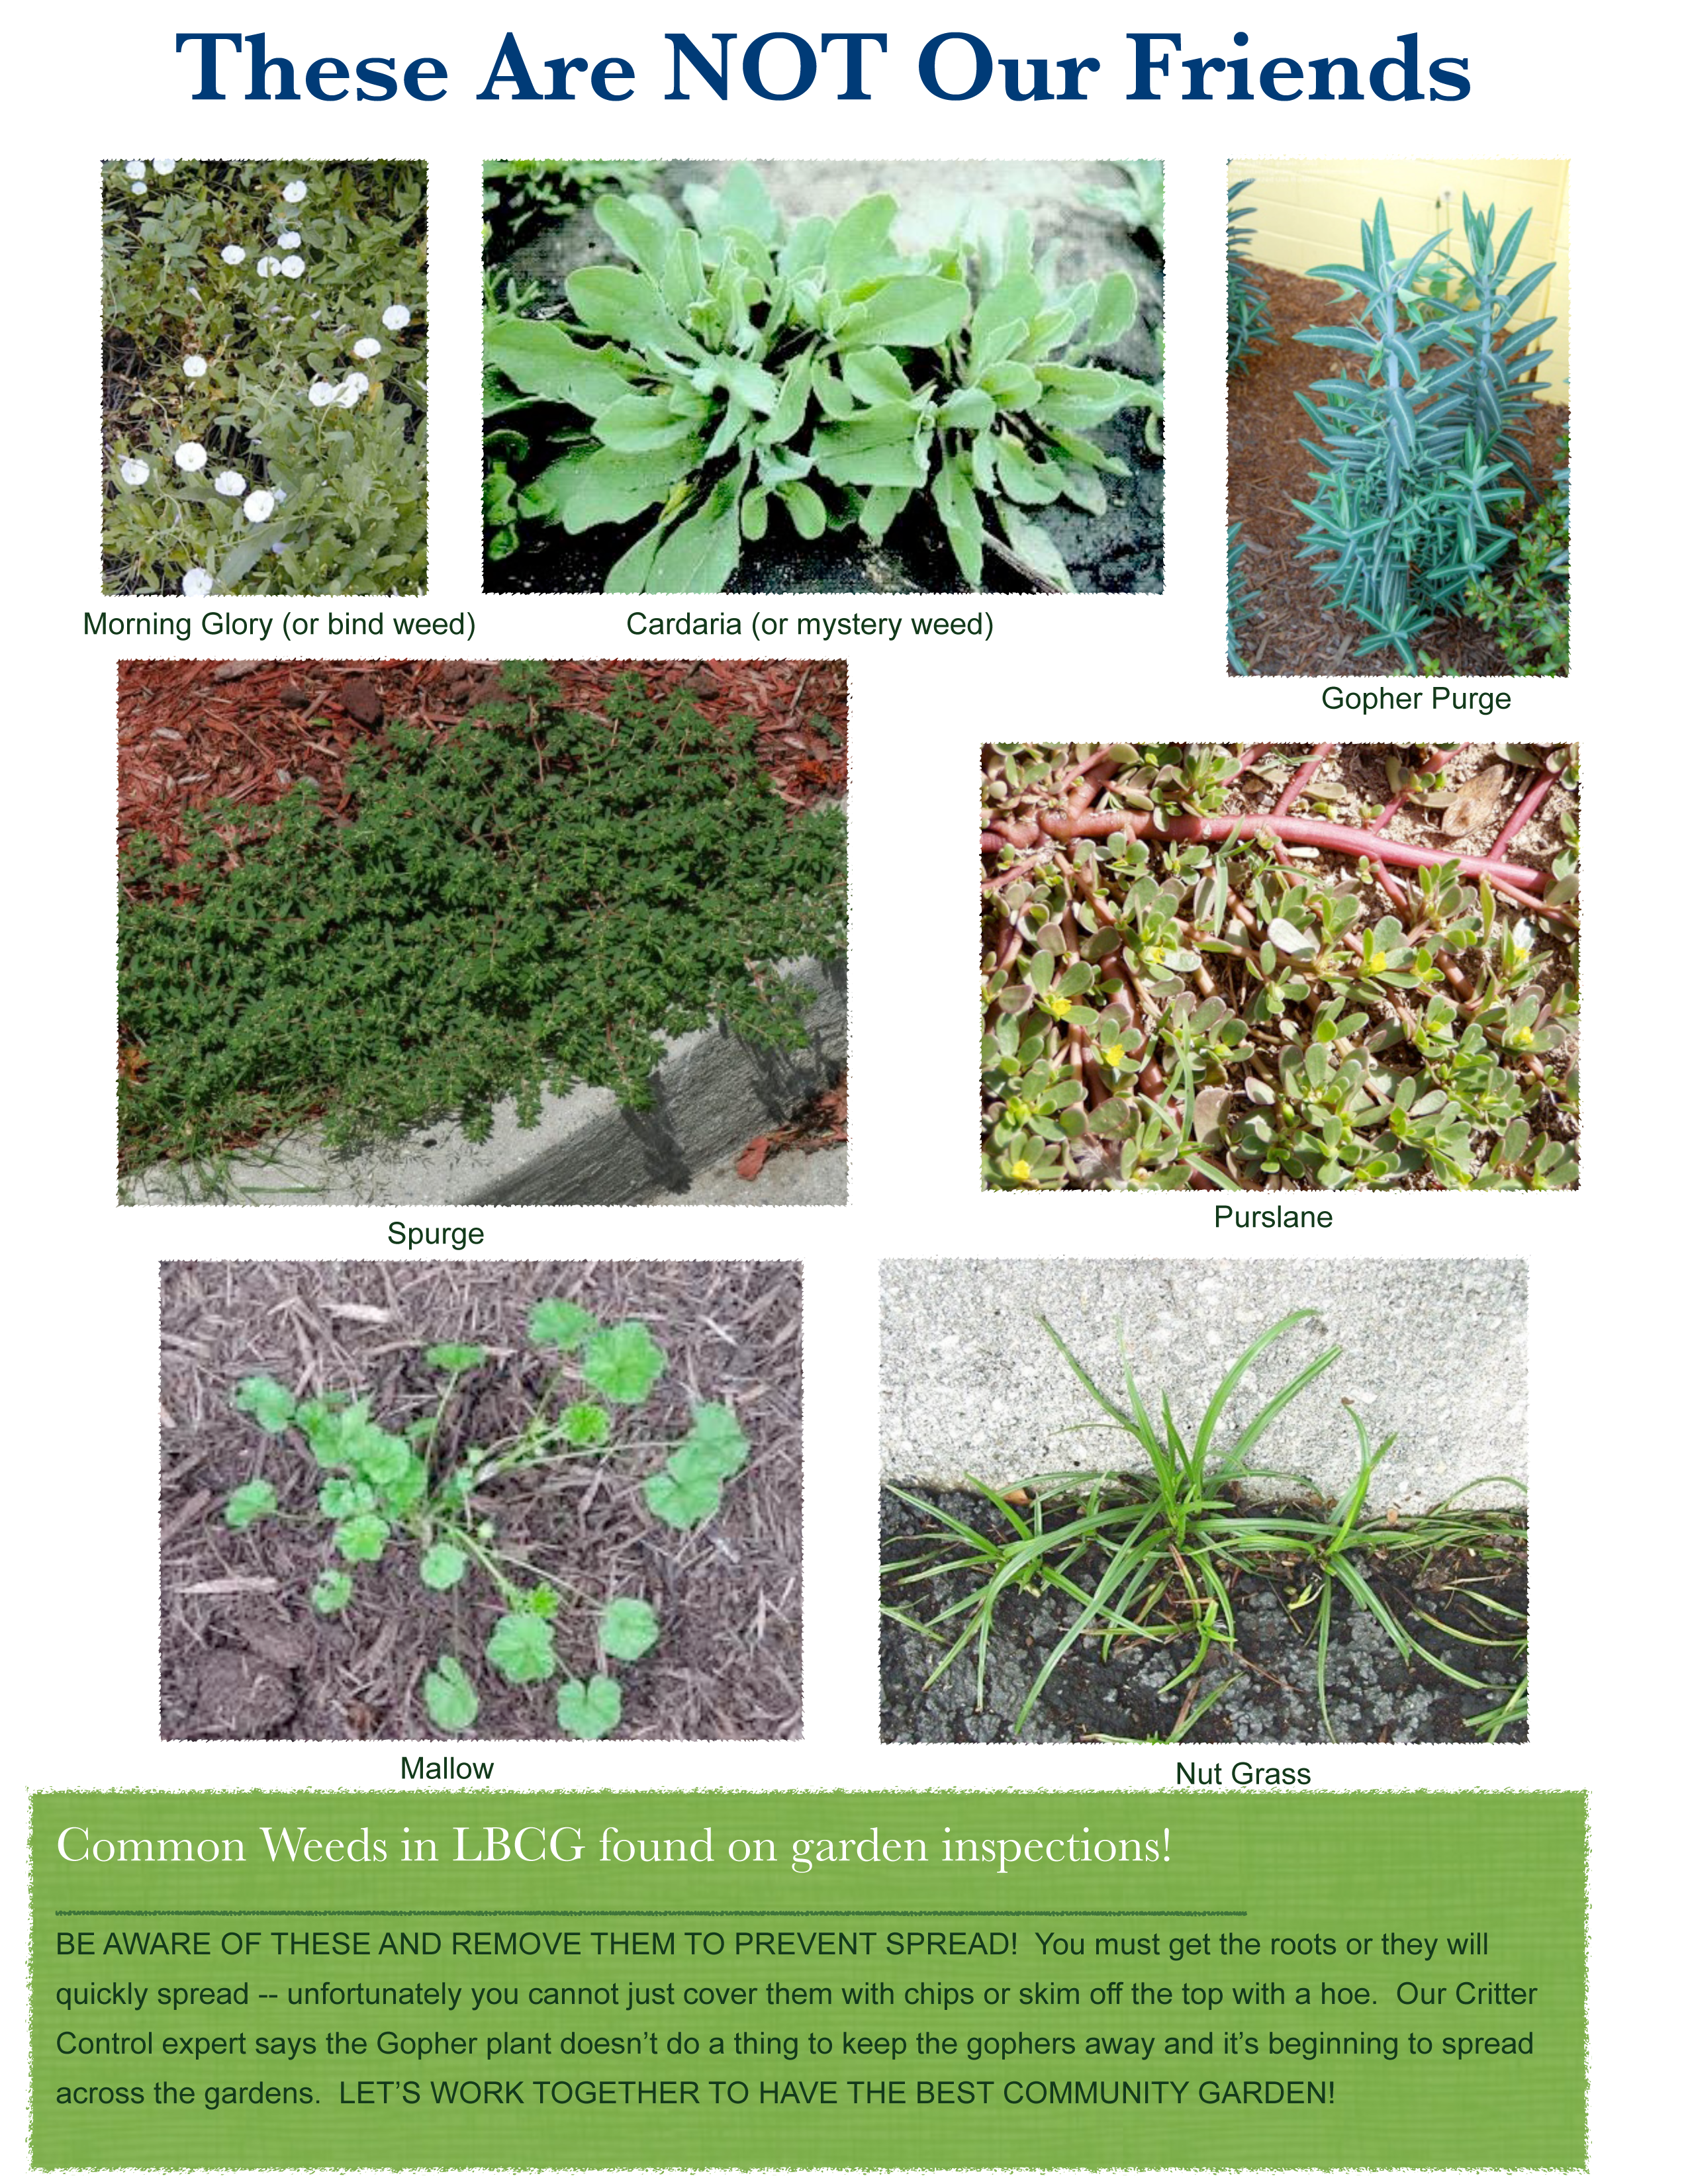 Weeds in flower beds with potato like roots - Long Beach Community Garden Association Inc Common Weeds